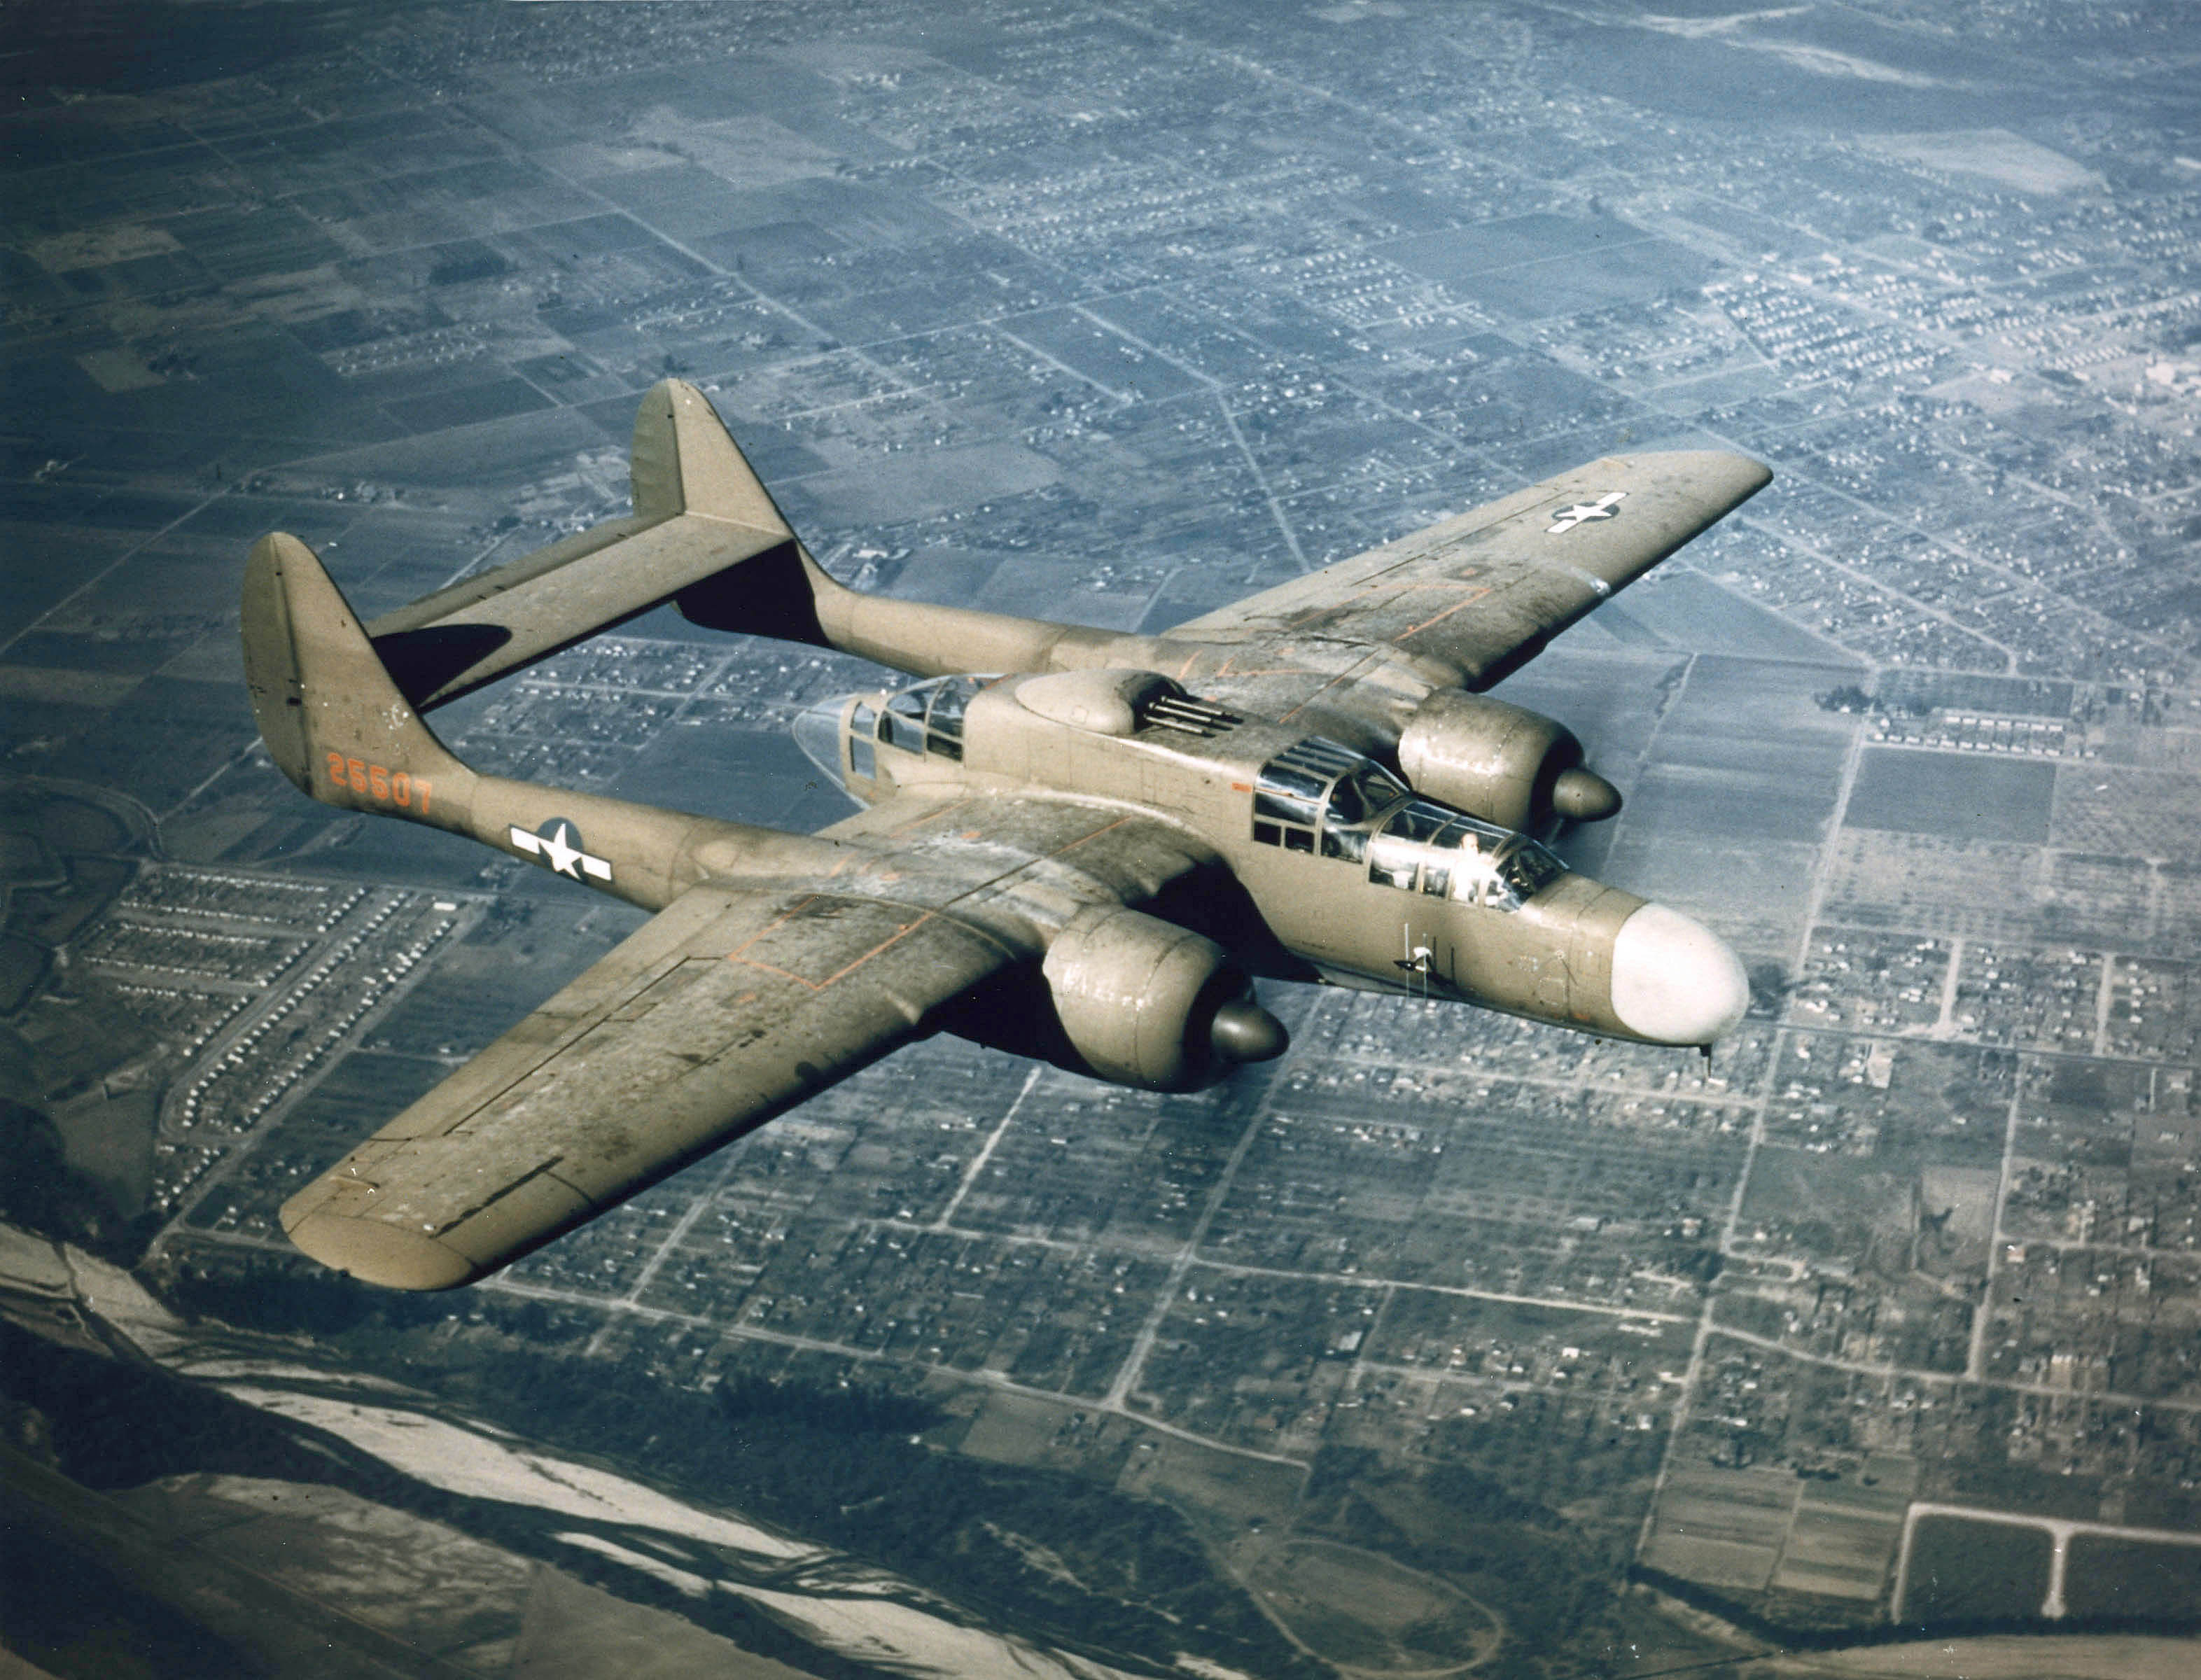 Northrop P-61 Black Widow - Wikipedia